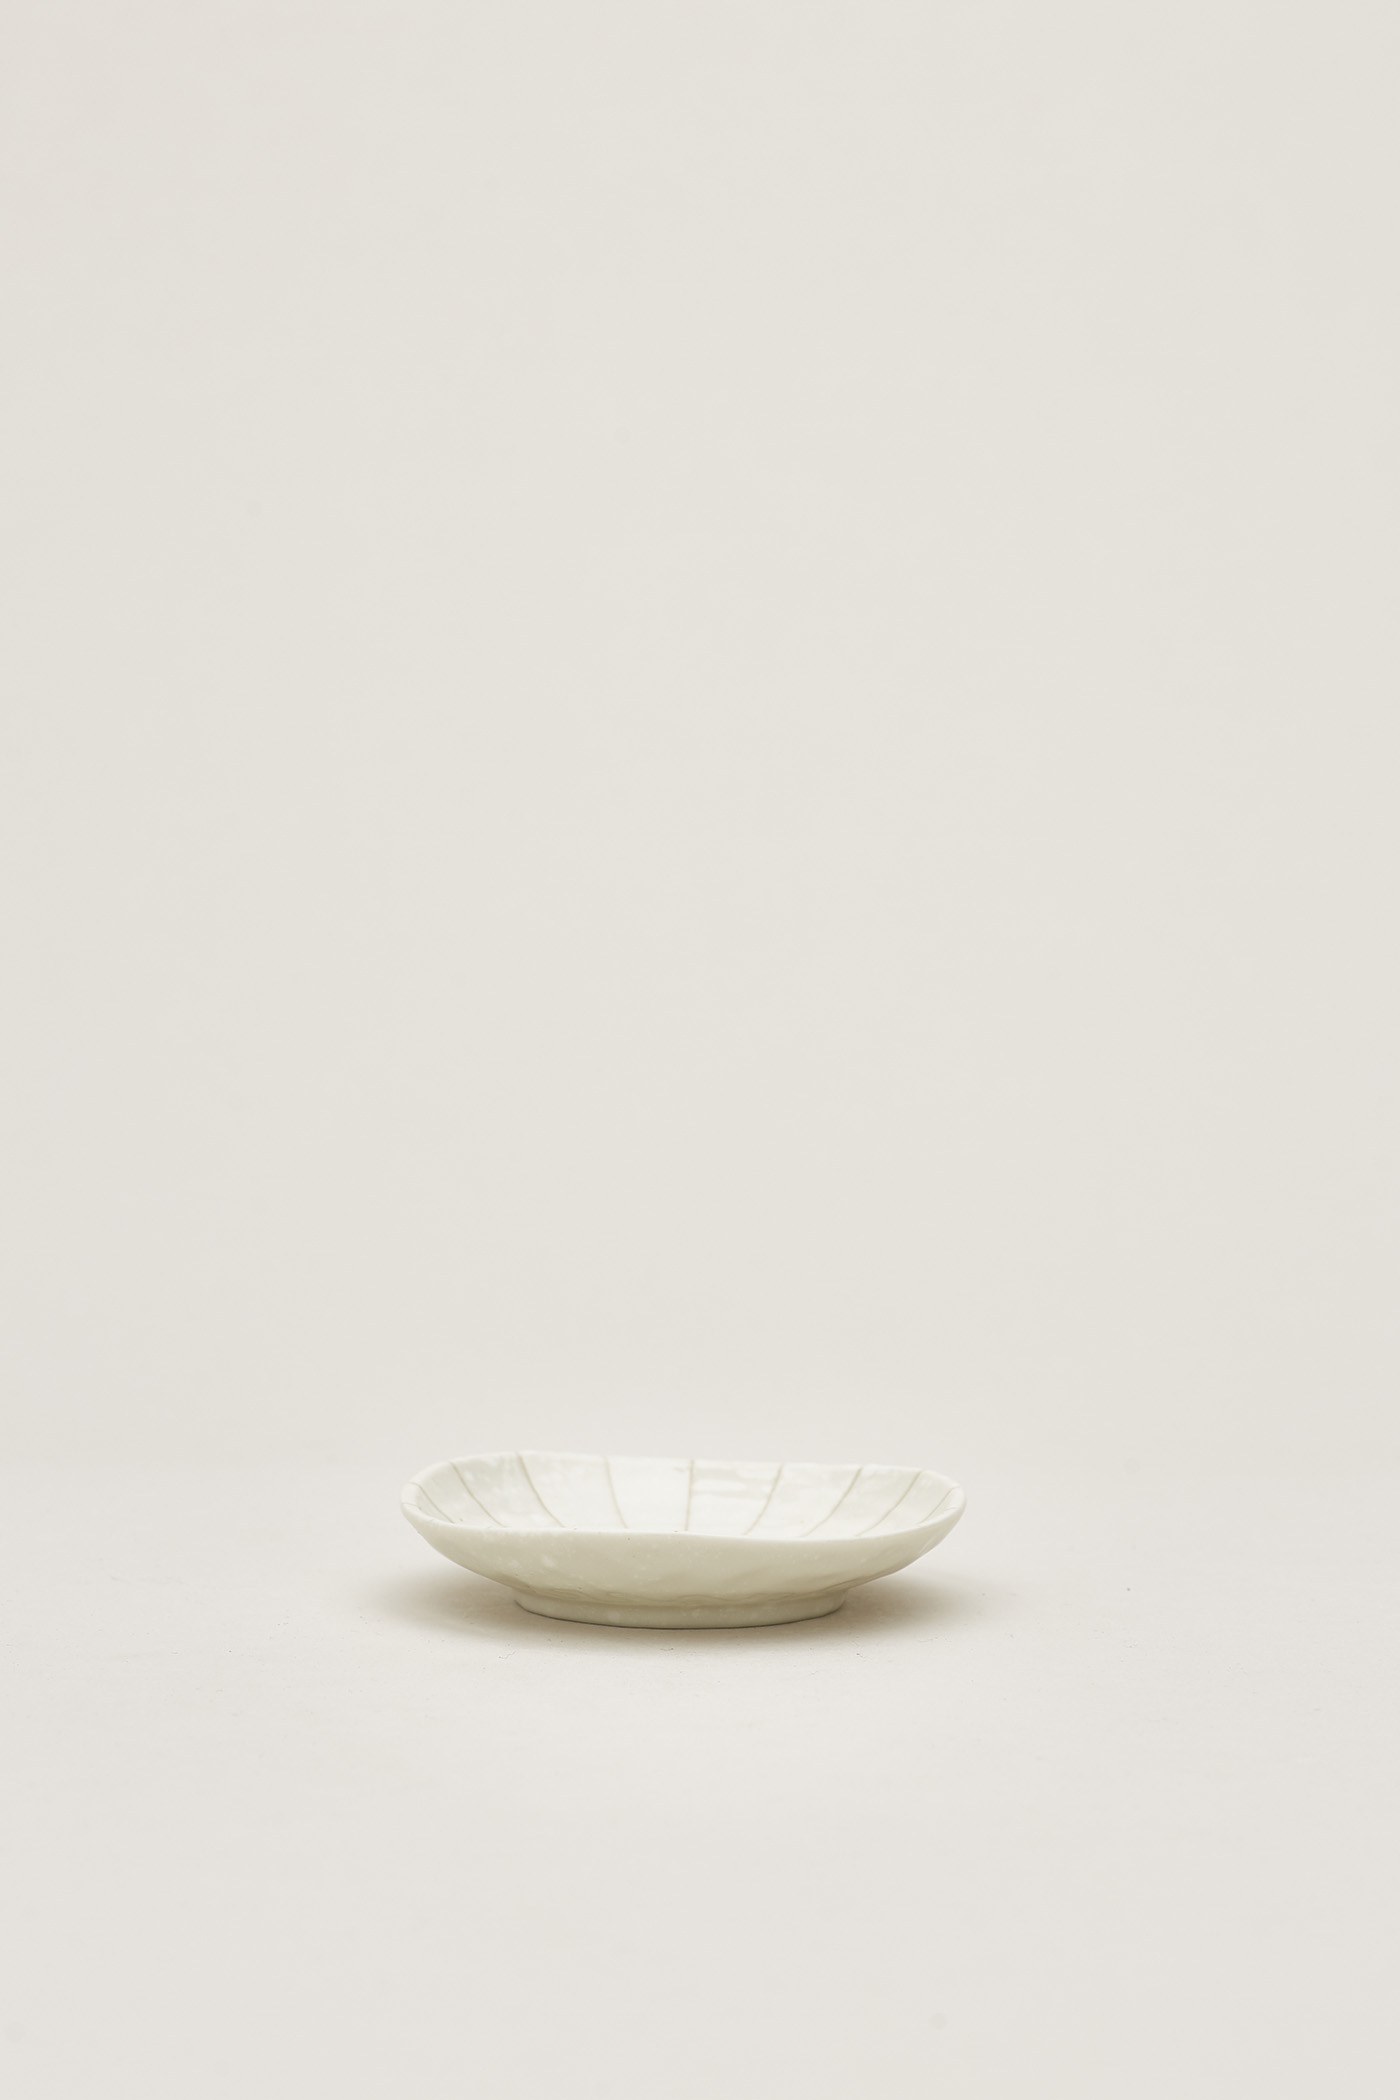 Chizu Small Dish